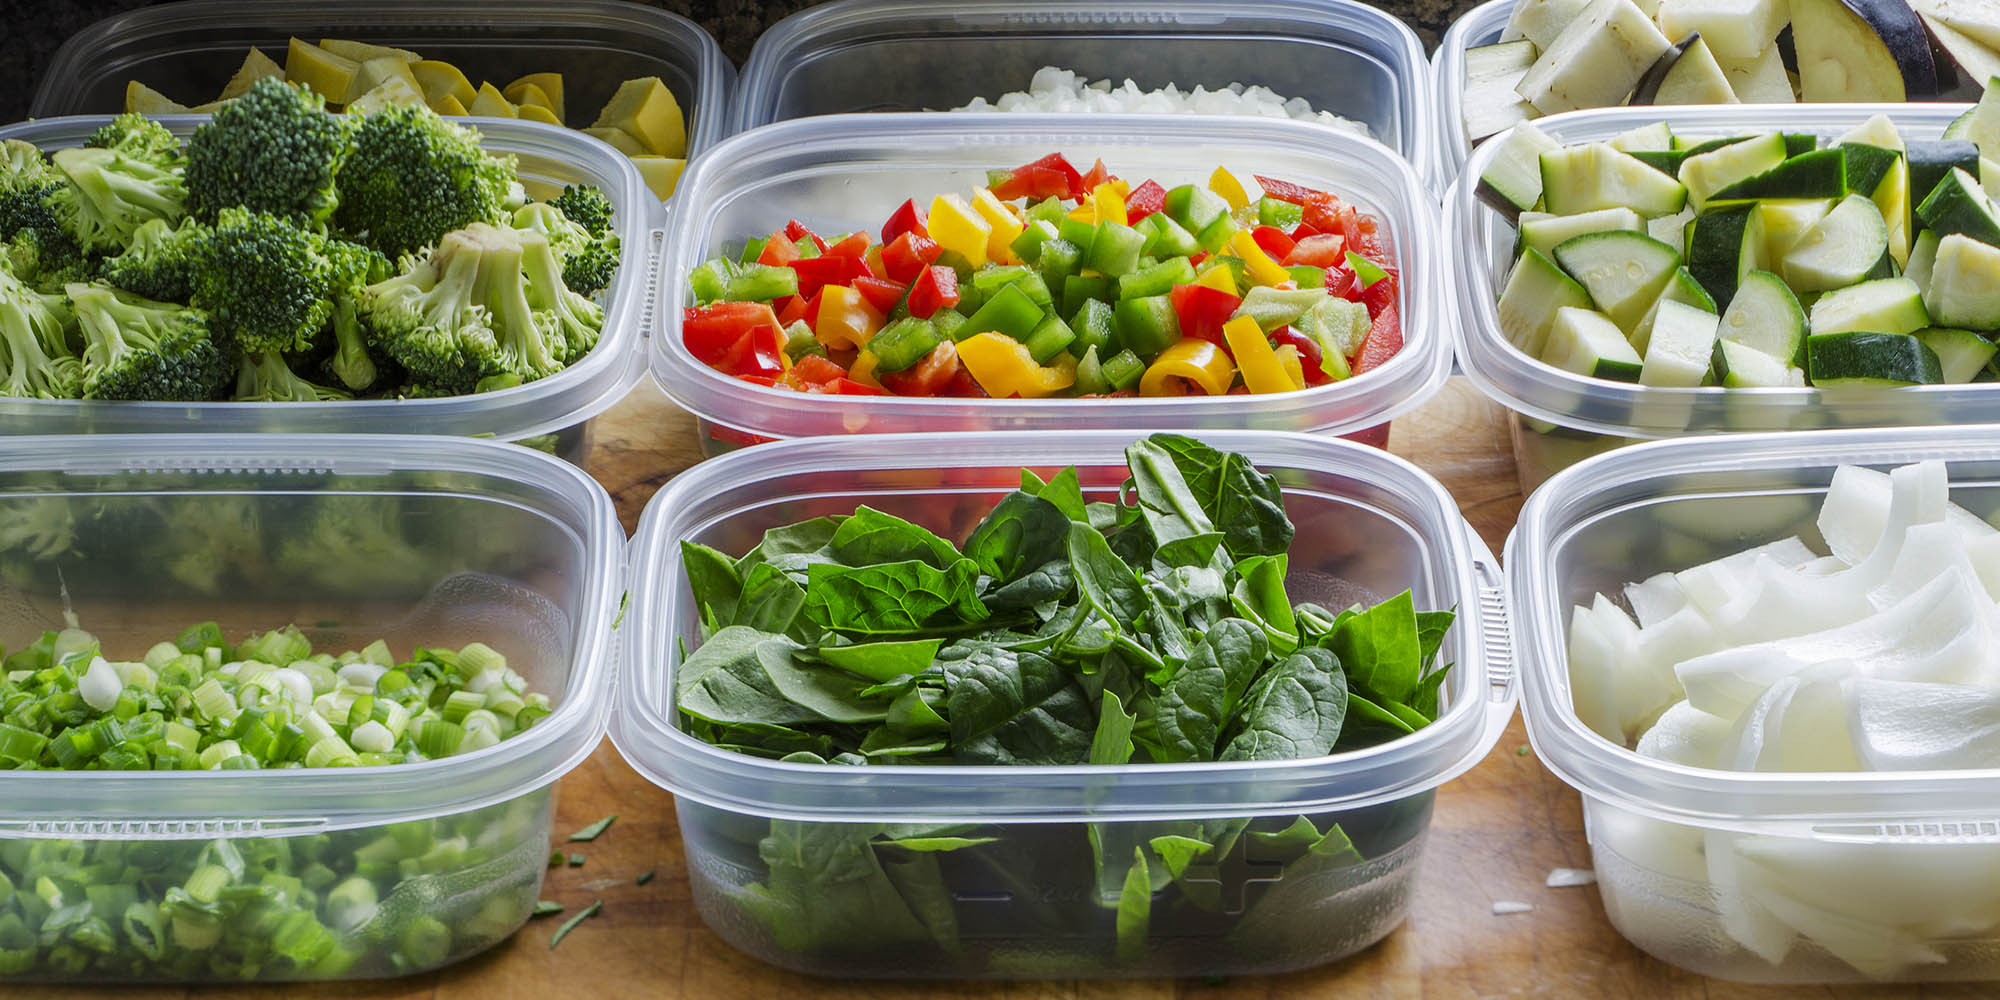 10 Tips to Meal Prep Without Getting Bored